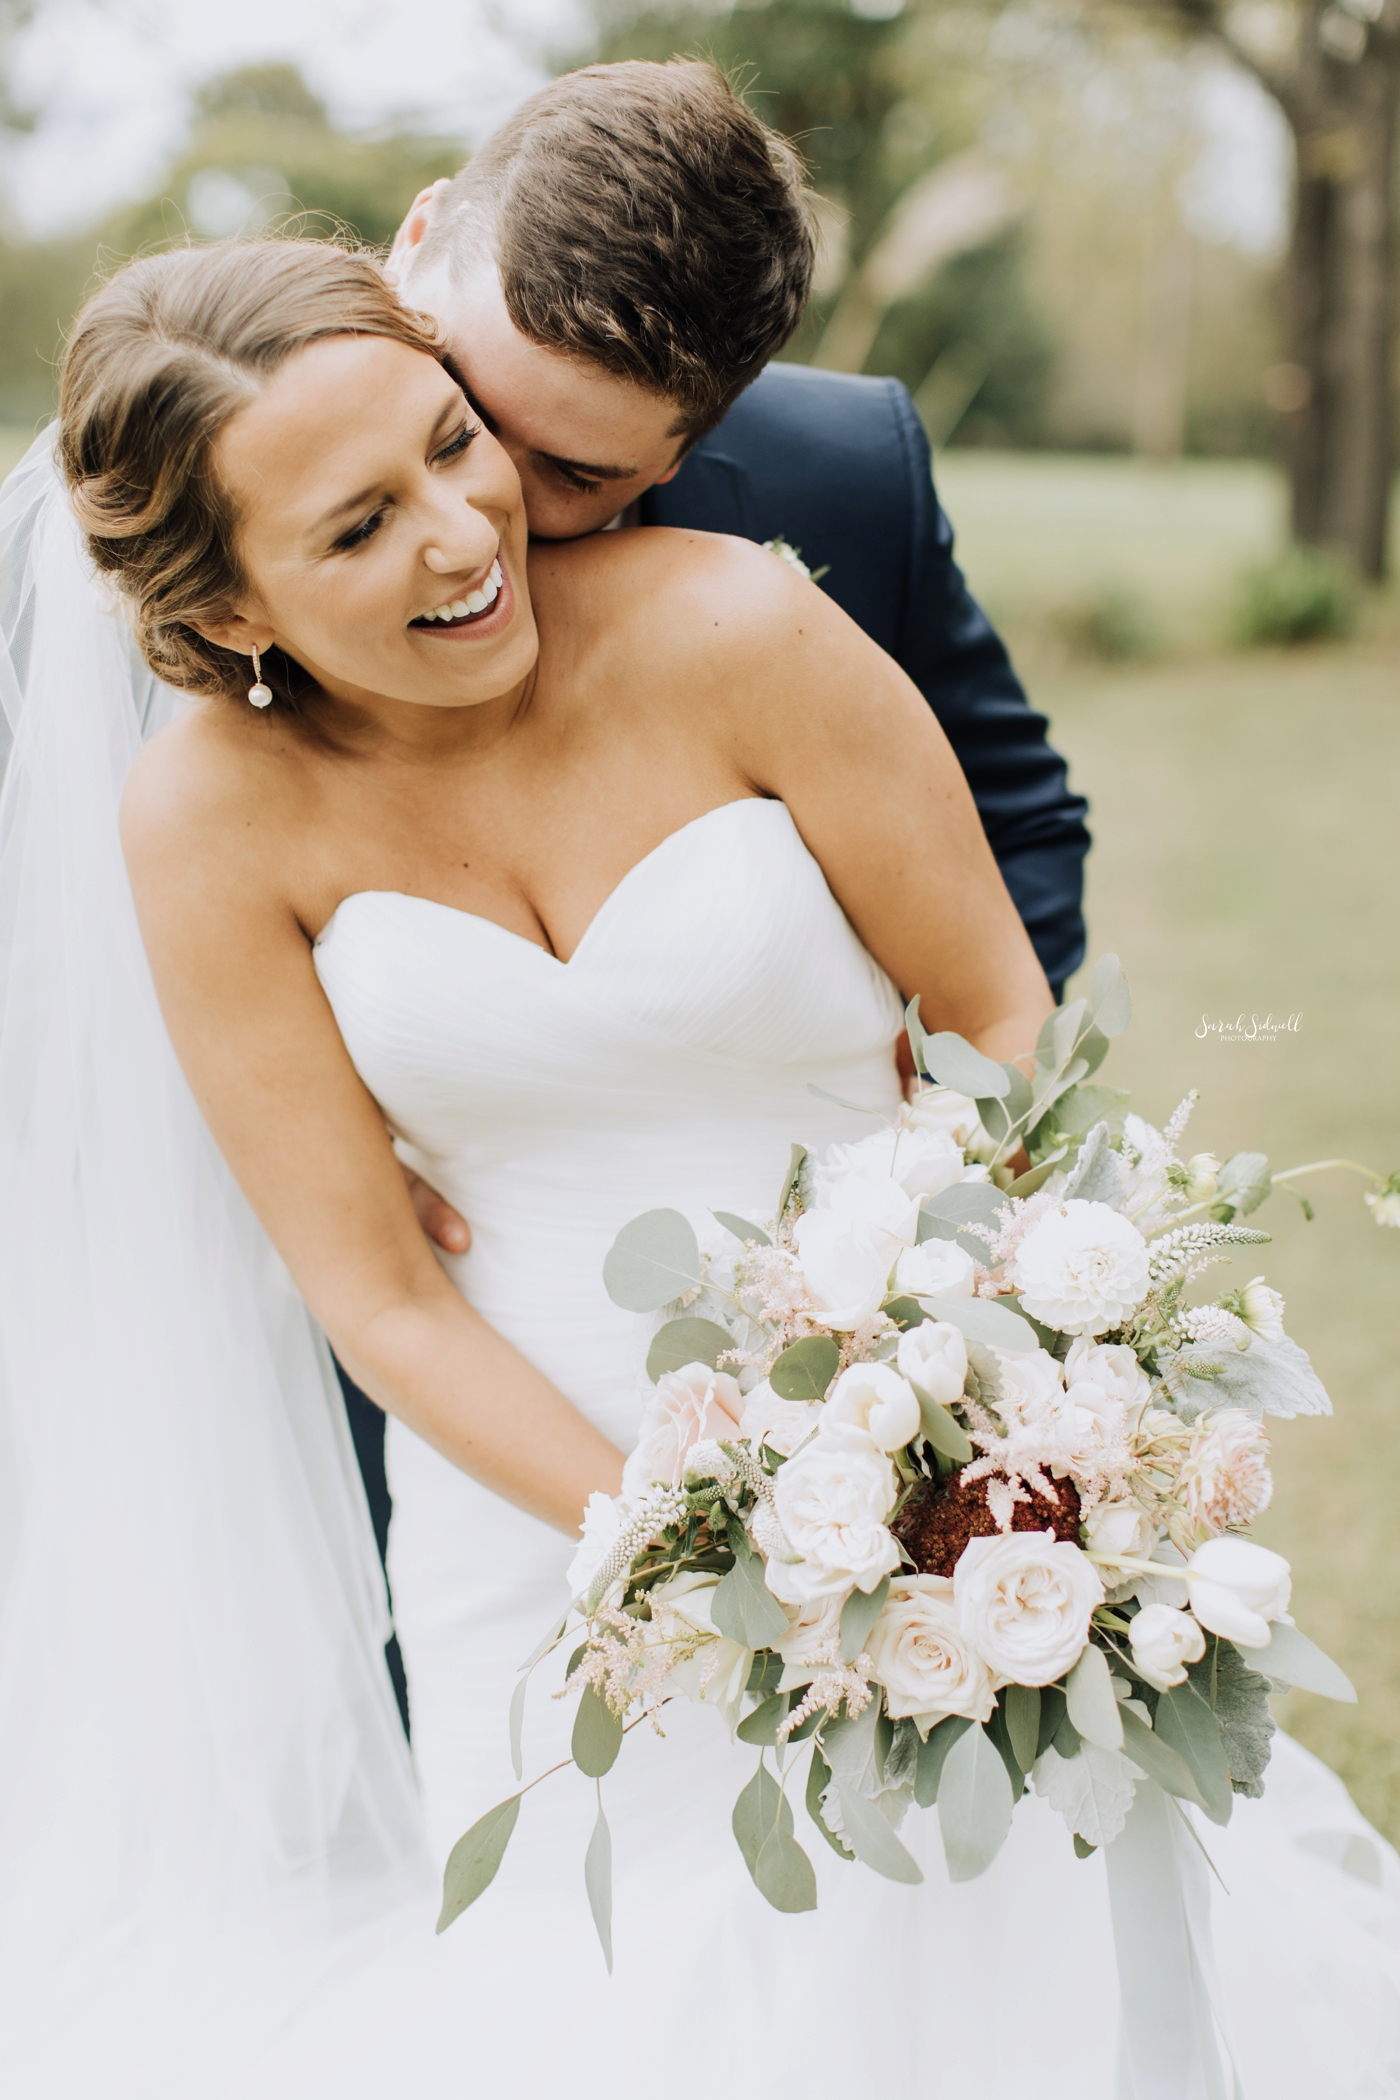 Wedding Pictures | Sarah Sidwell Photography